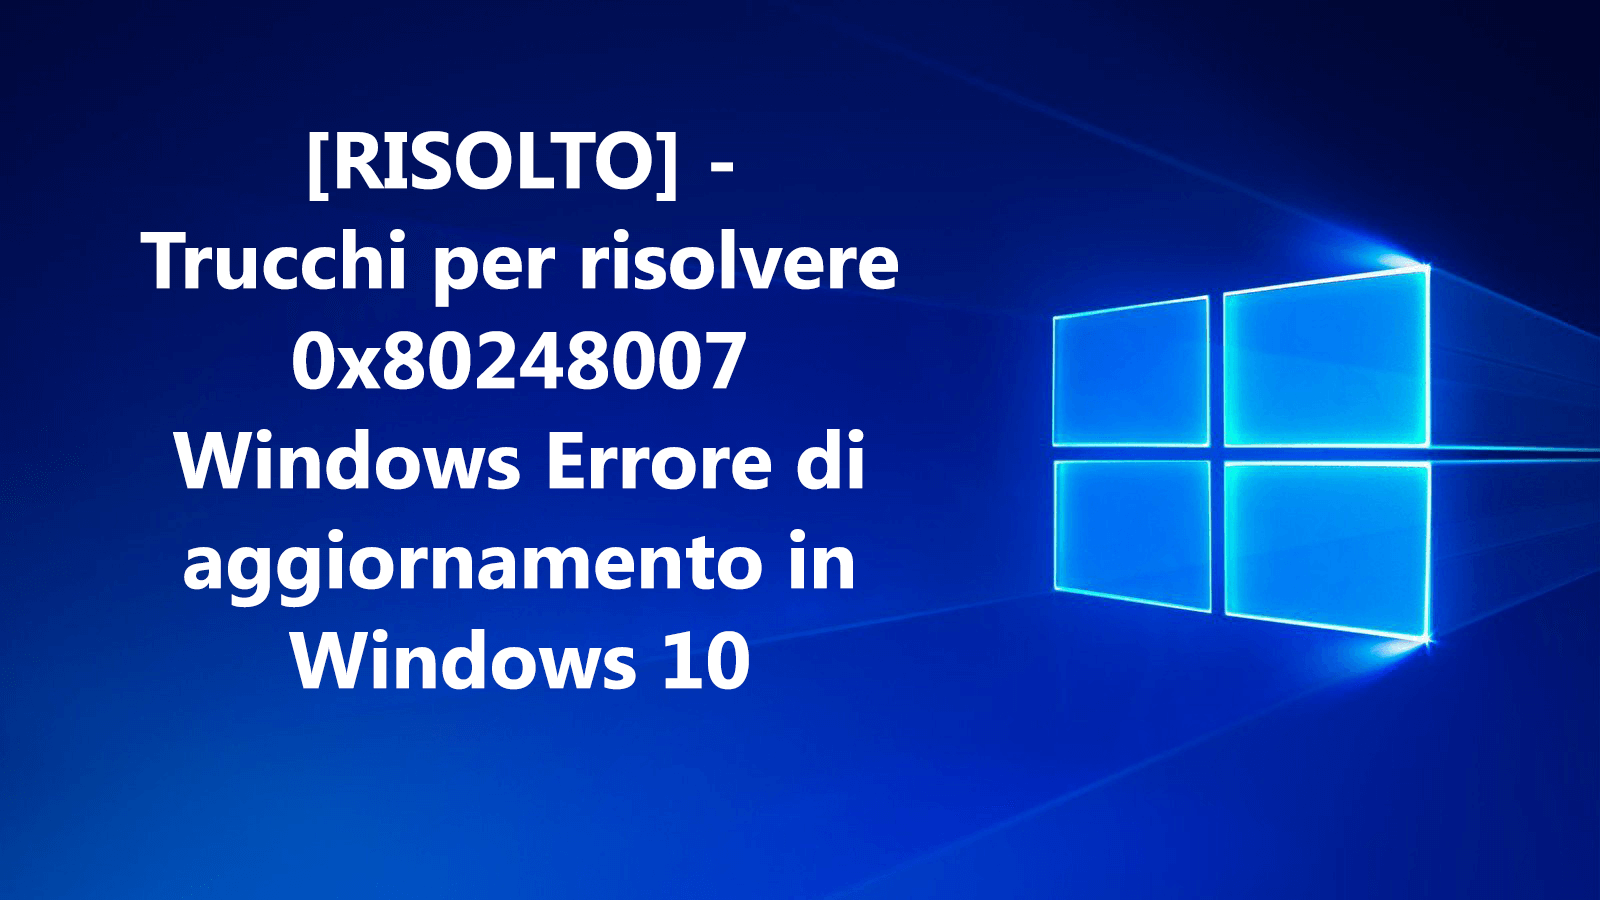 errore 0x80248007 in Windows 10